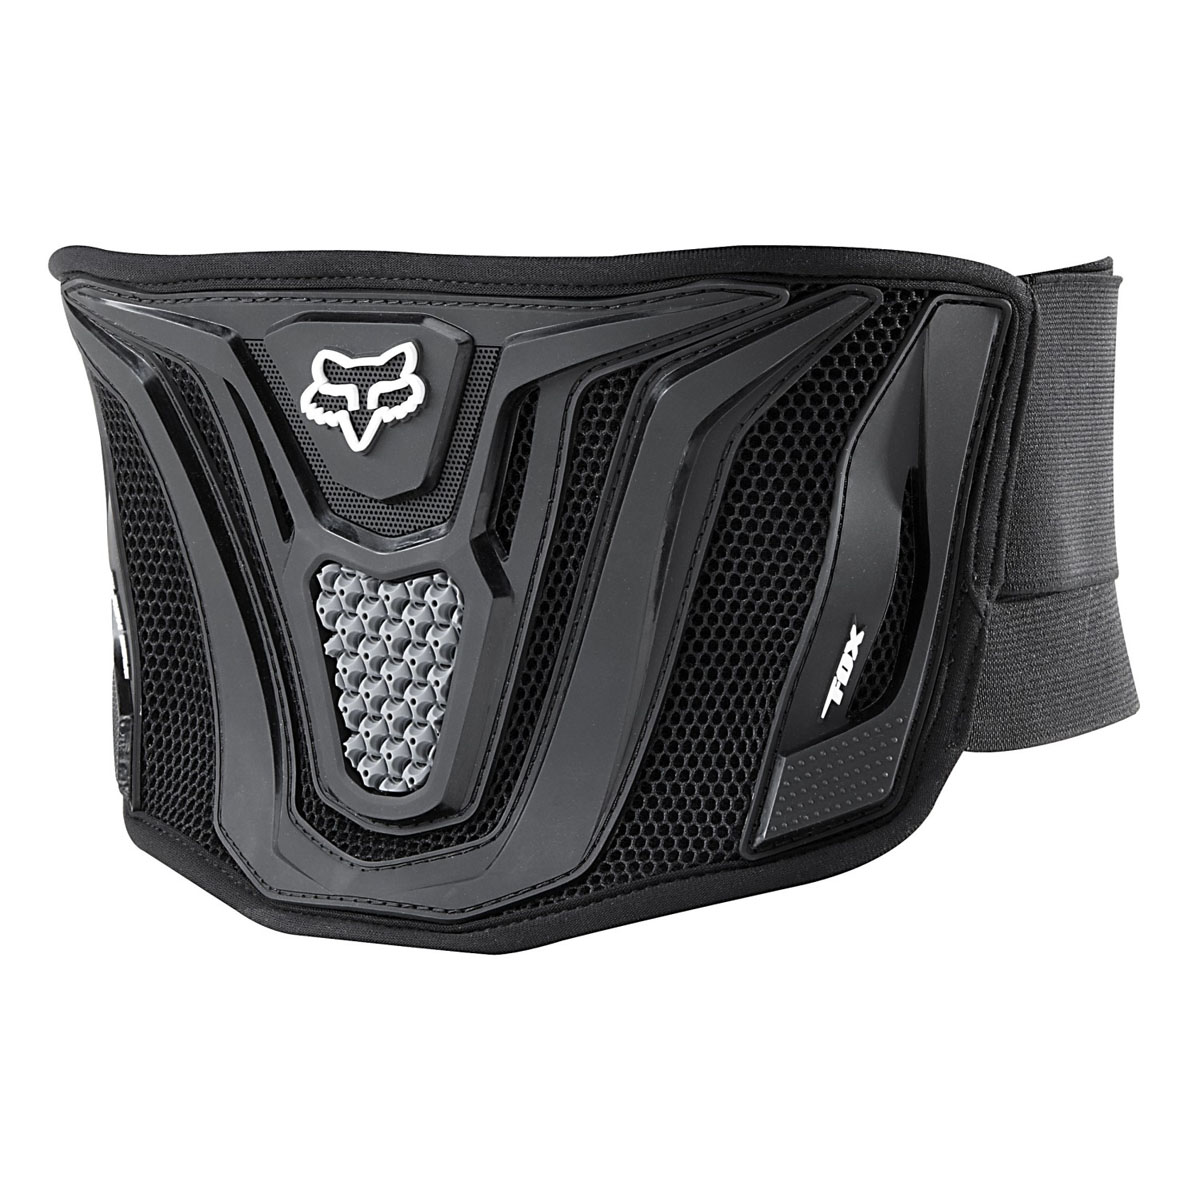 07036-014-OS fox racing black belt kidney belt niergordel nierengurt ceinture moto